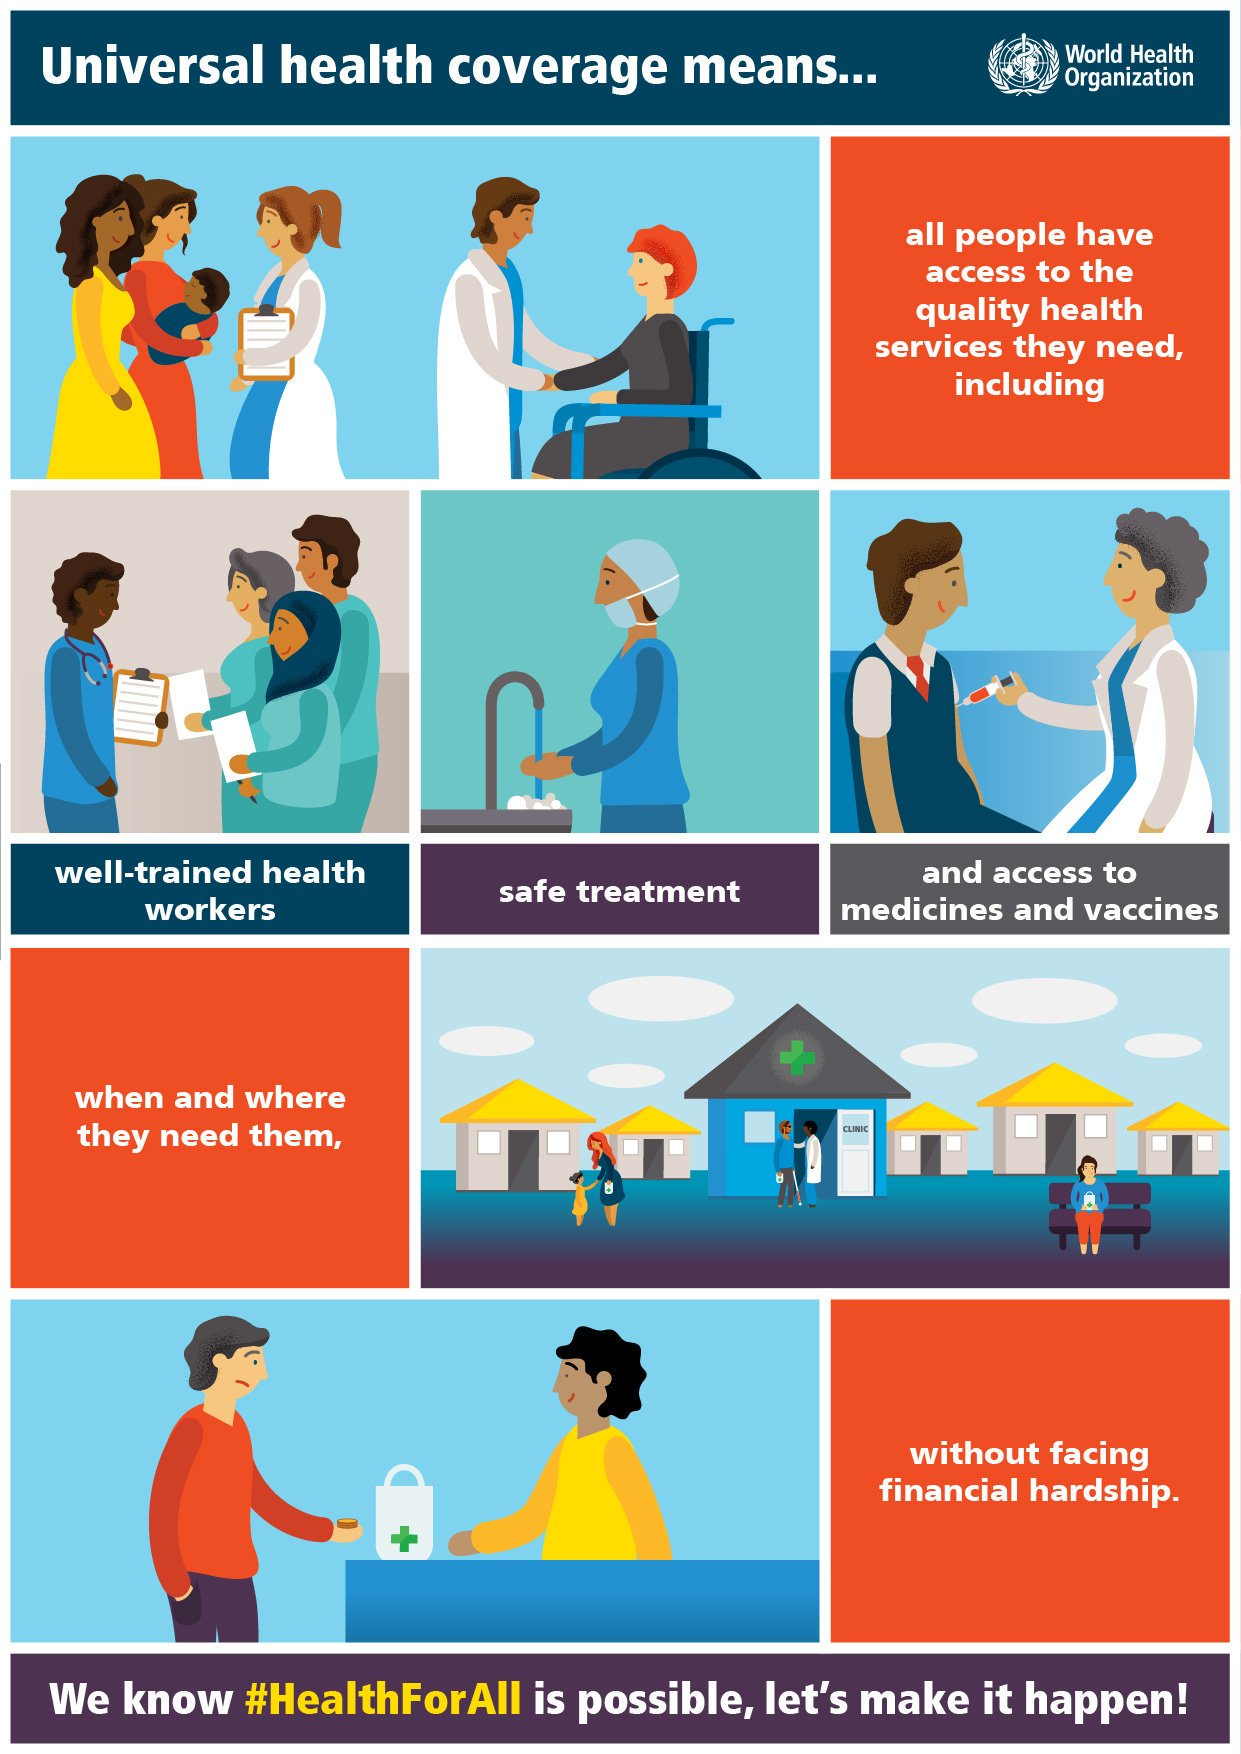 Graphic on universal health coverage interventions includes safe treatment which includes handwashing